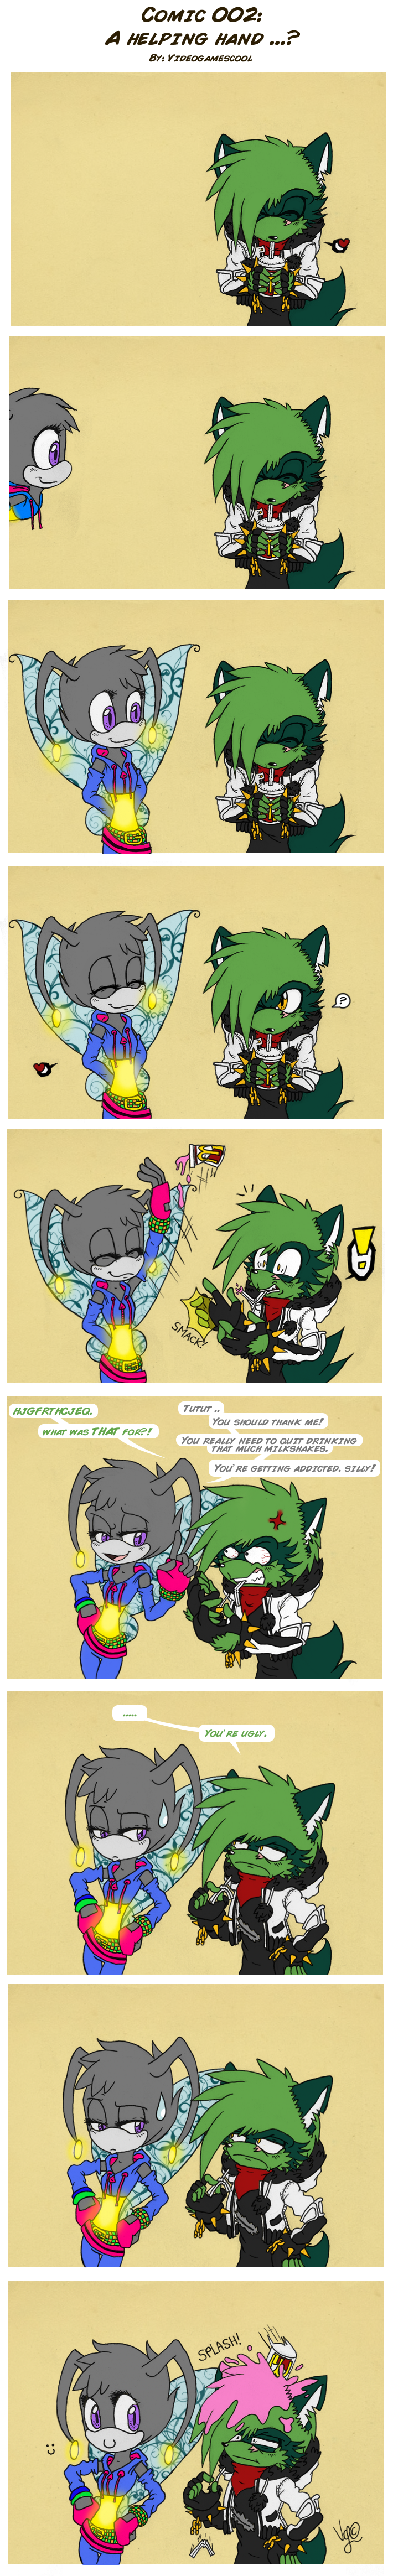 Comic 002 :: A helping hand ..? by Yommii